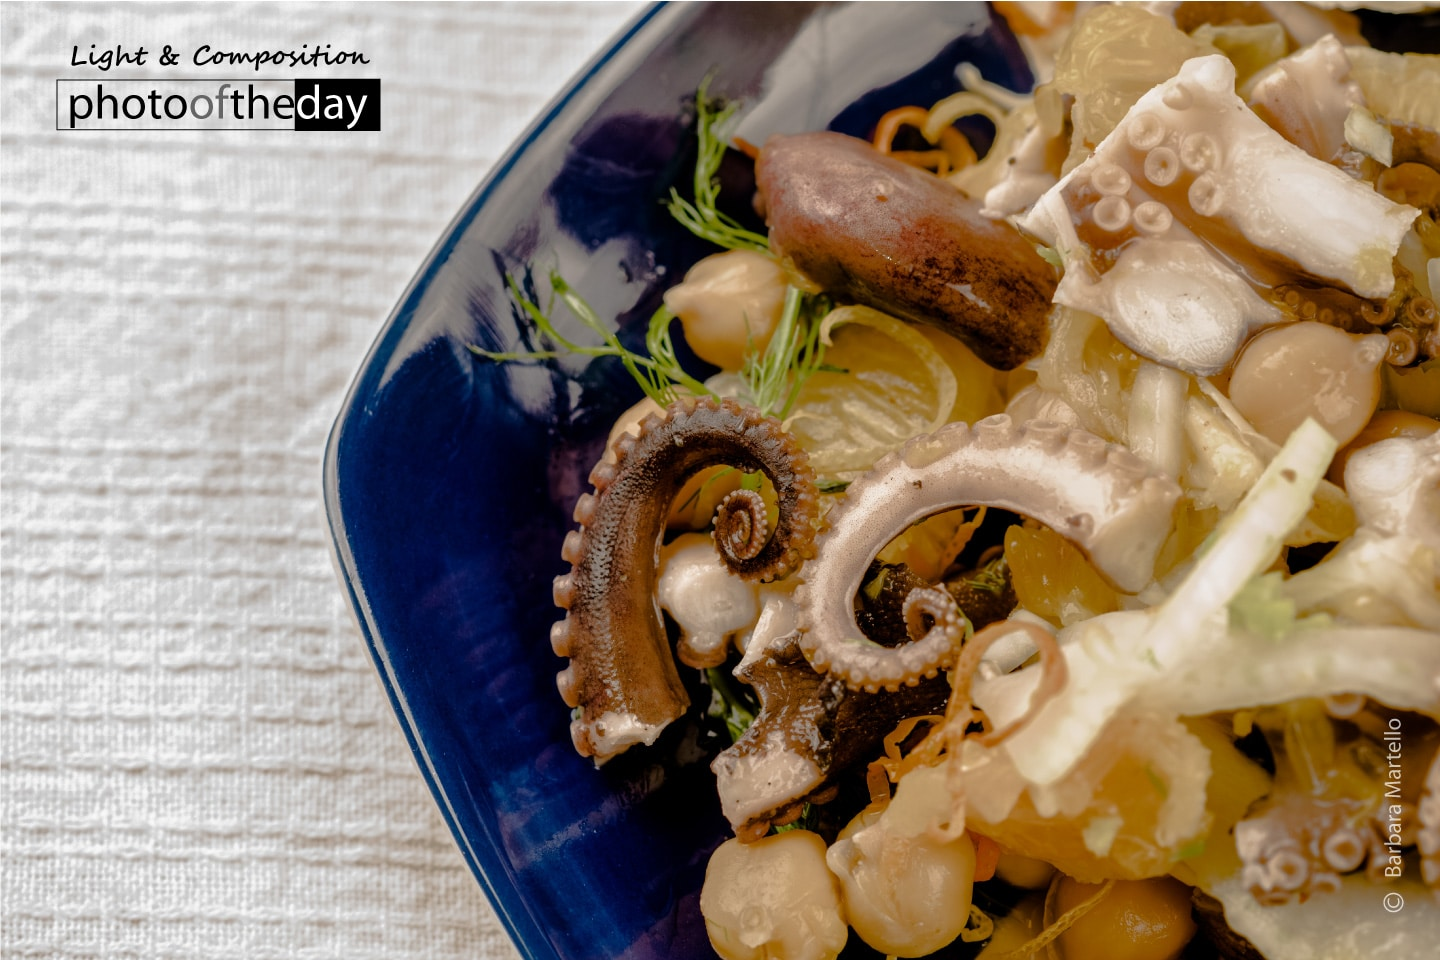 Octopus Salad with Orange, Chickpeas, and Fennel by Barbara Martello